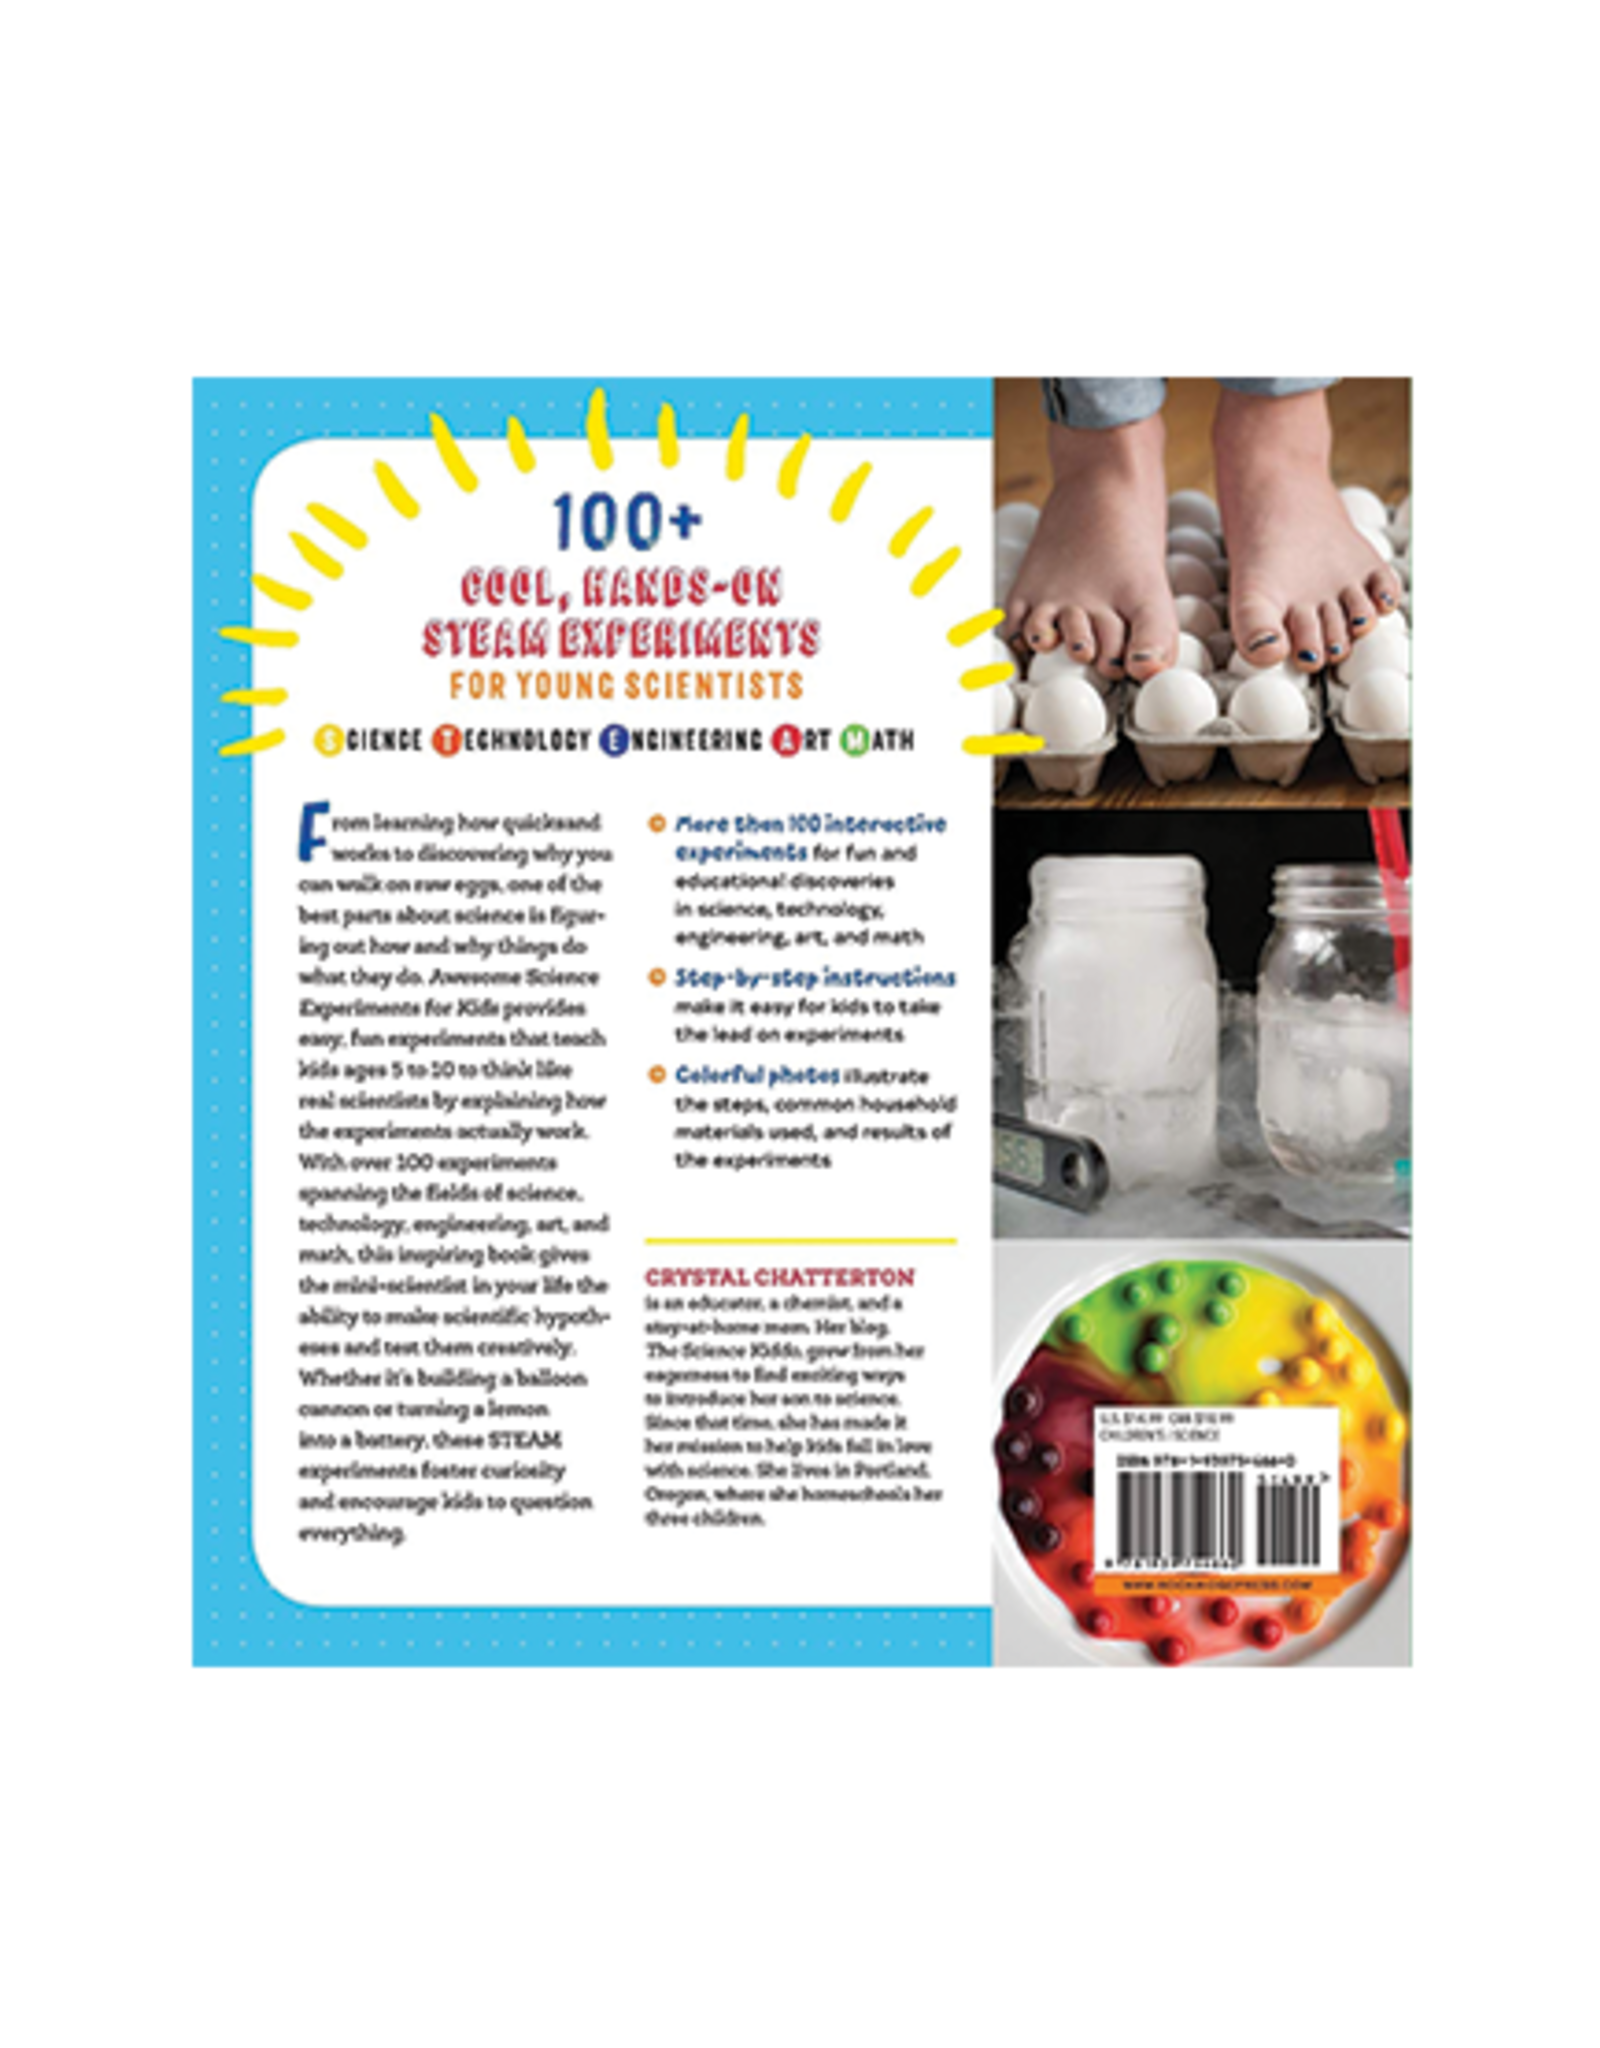 Awesome Science Experiments for Kids: 100+ Fun STEM Projects